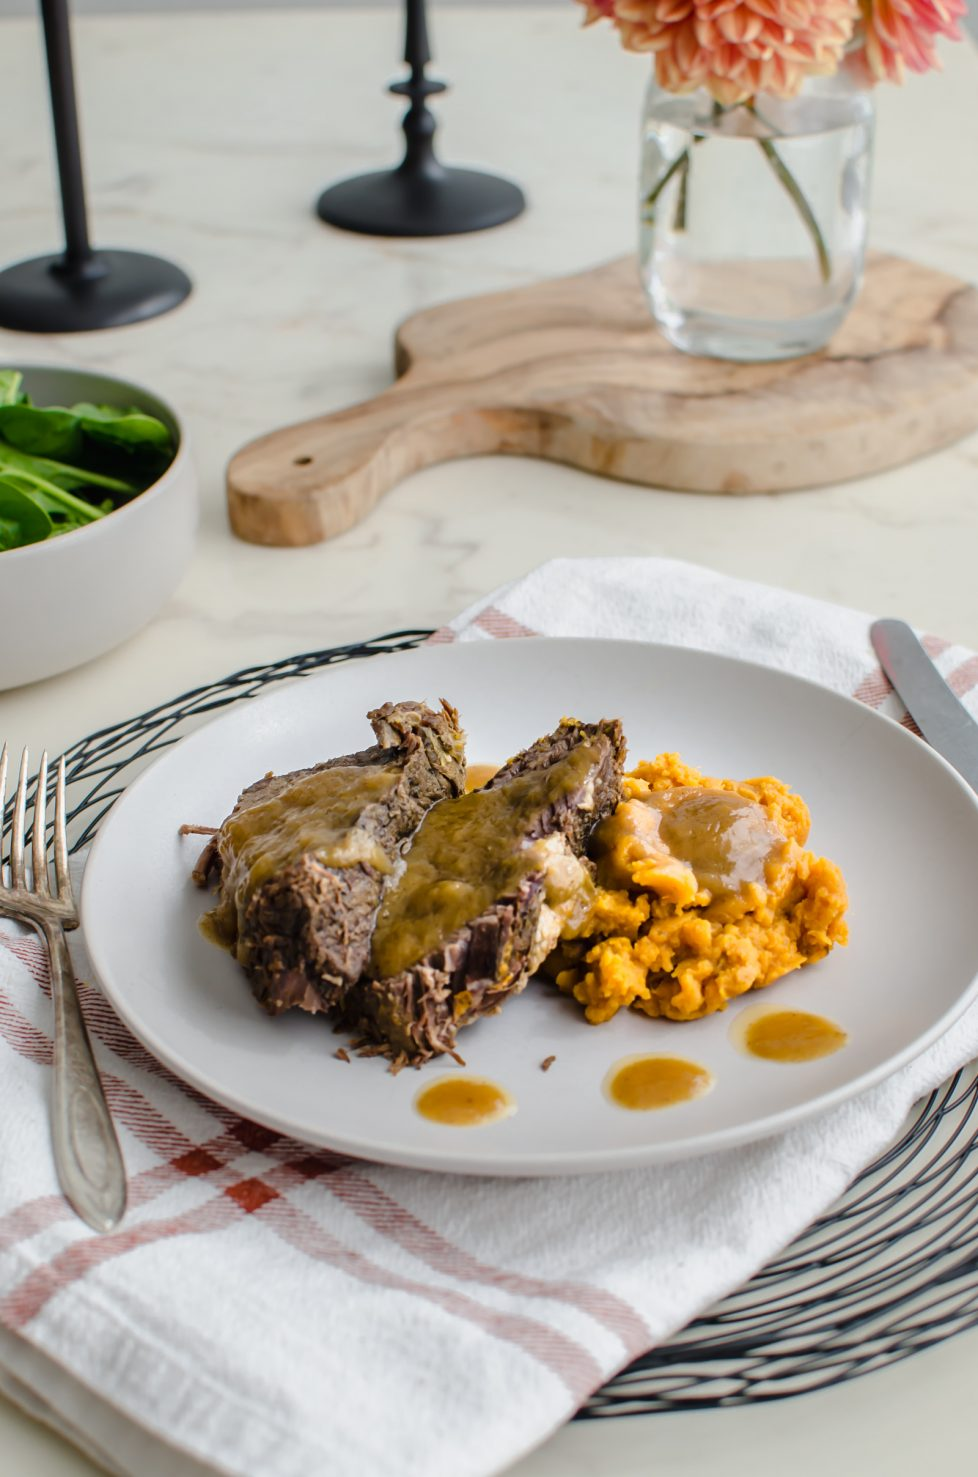 Beef roast on a plate with sweet potatoes and gravy.